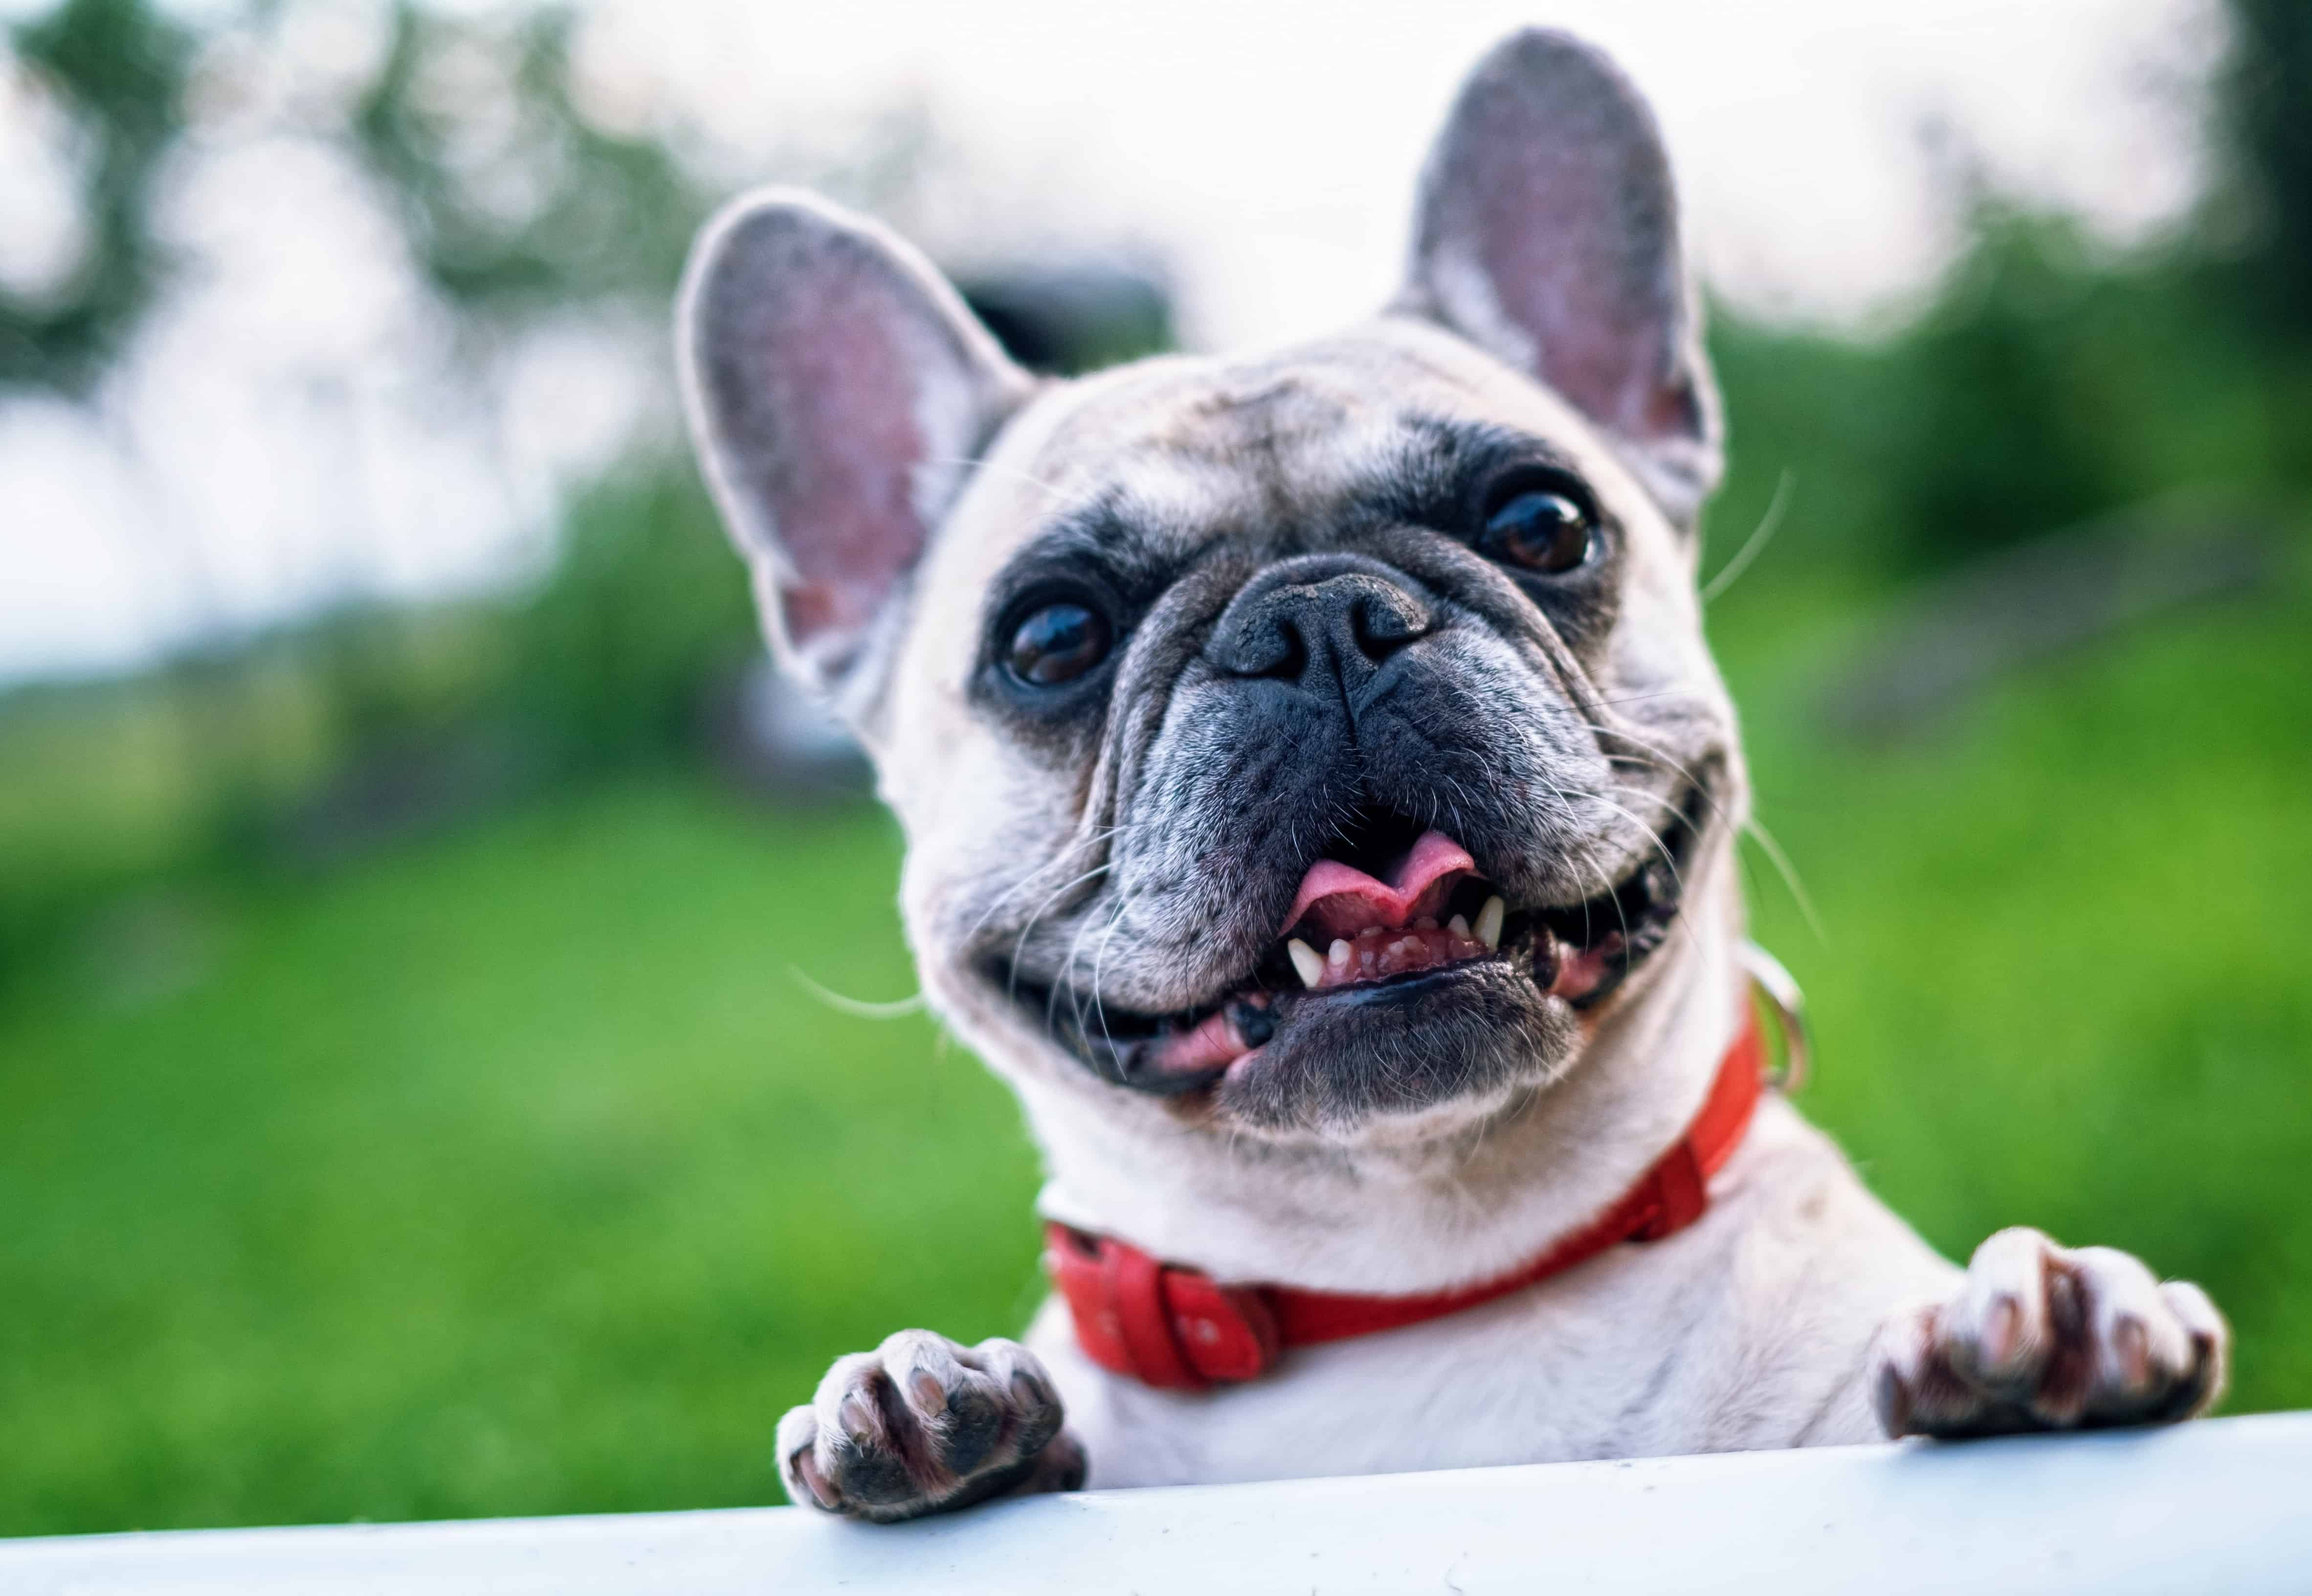 Dog Poops A Lot: Why It Happens And What You Can Do To Solve It